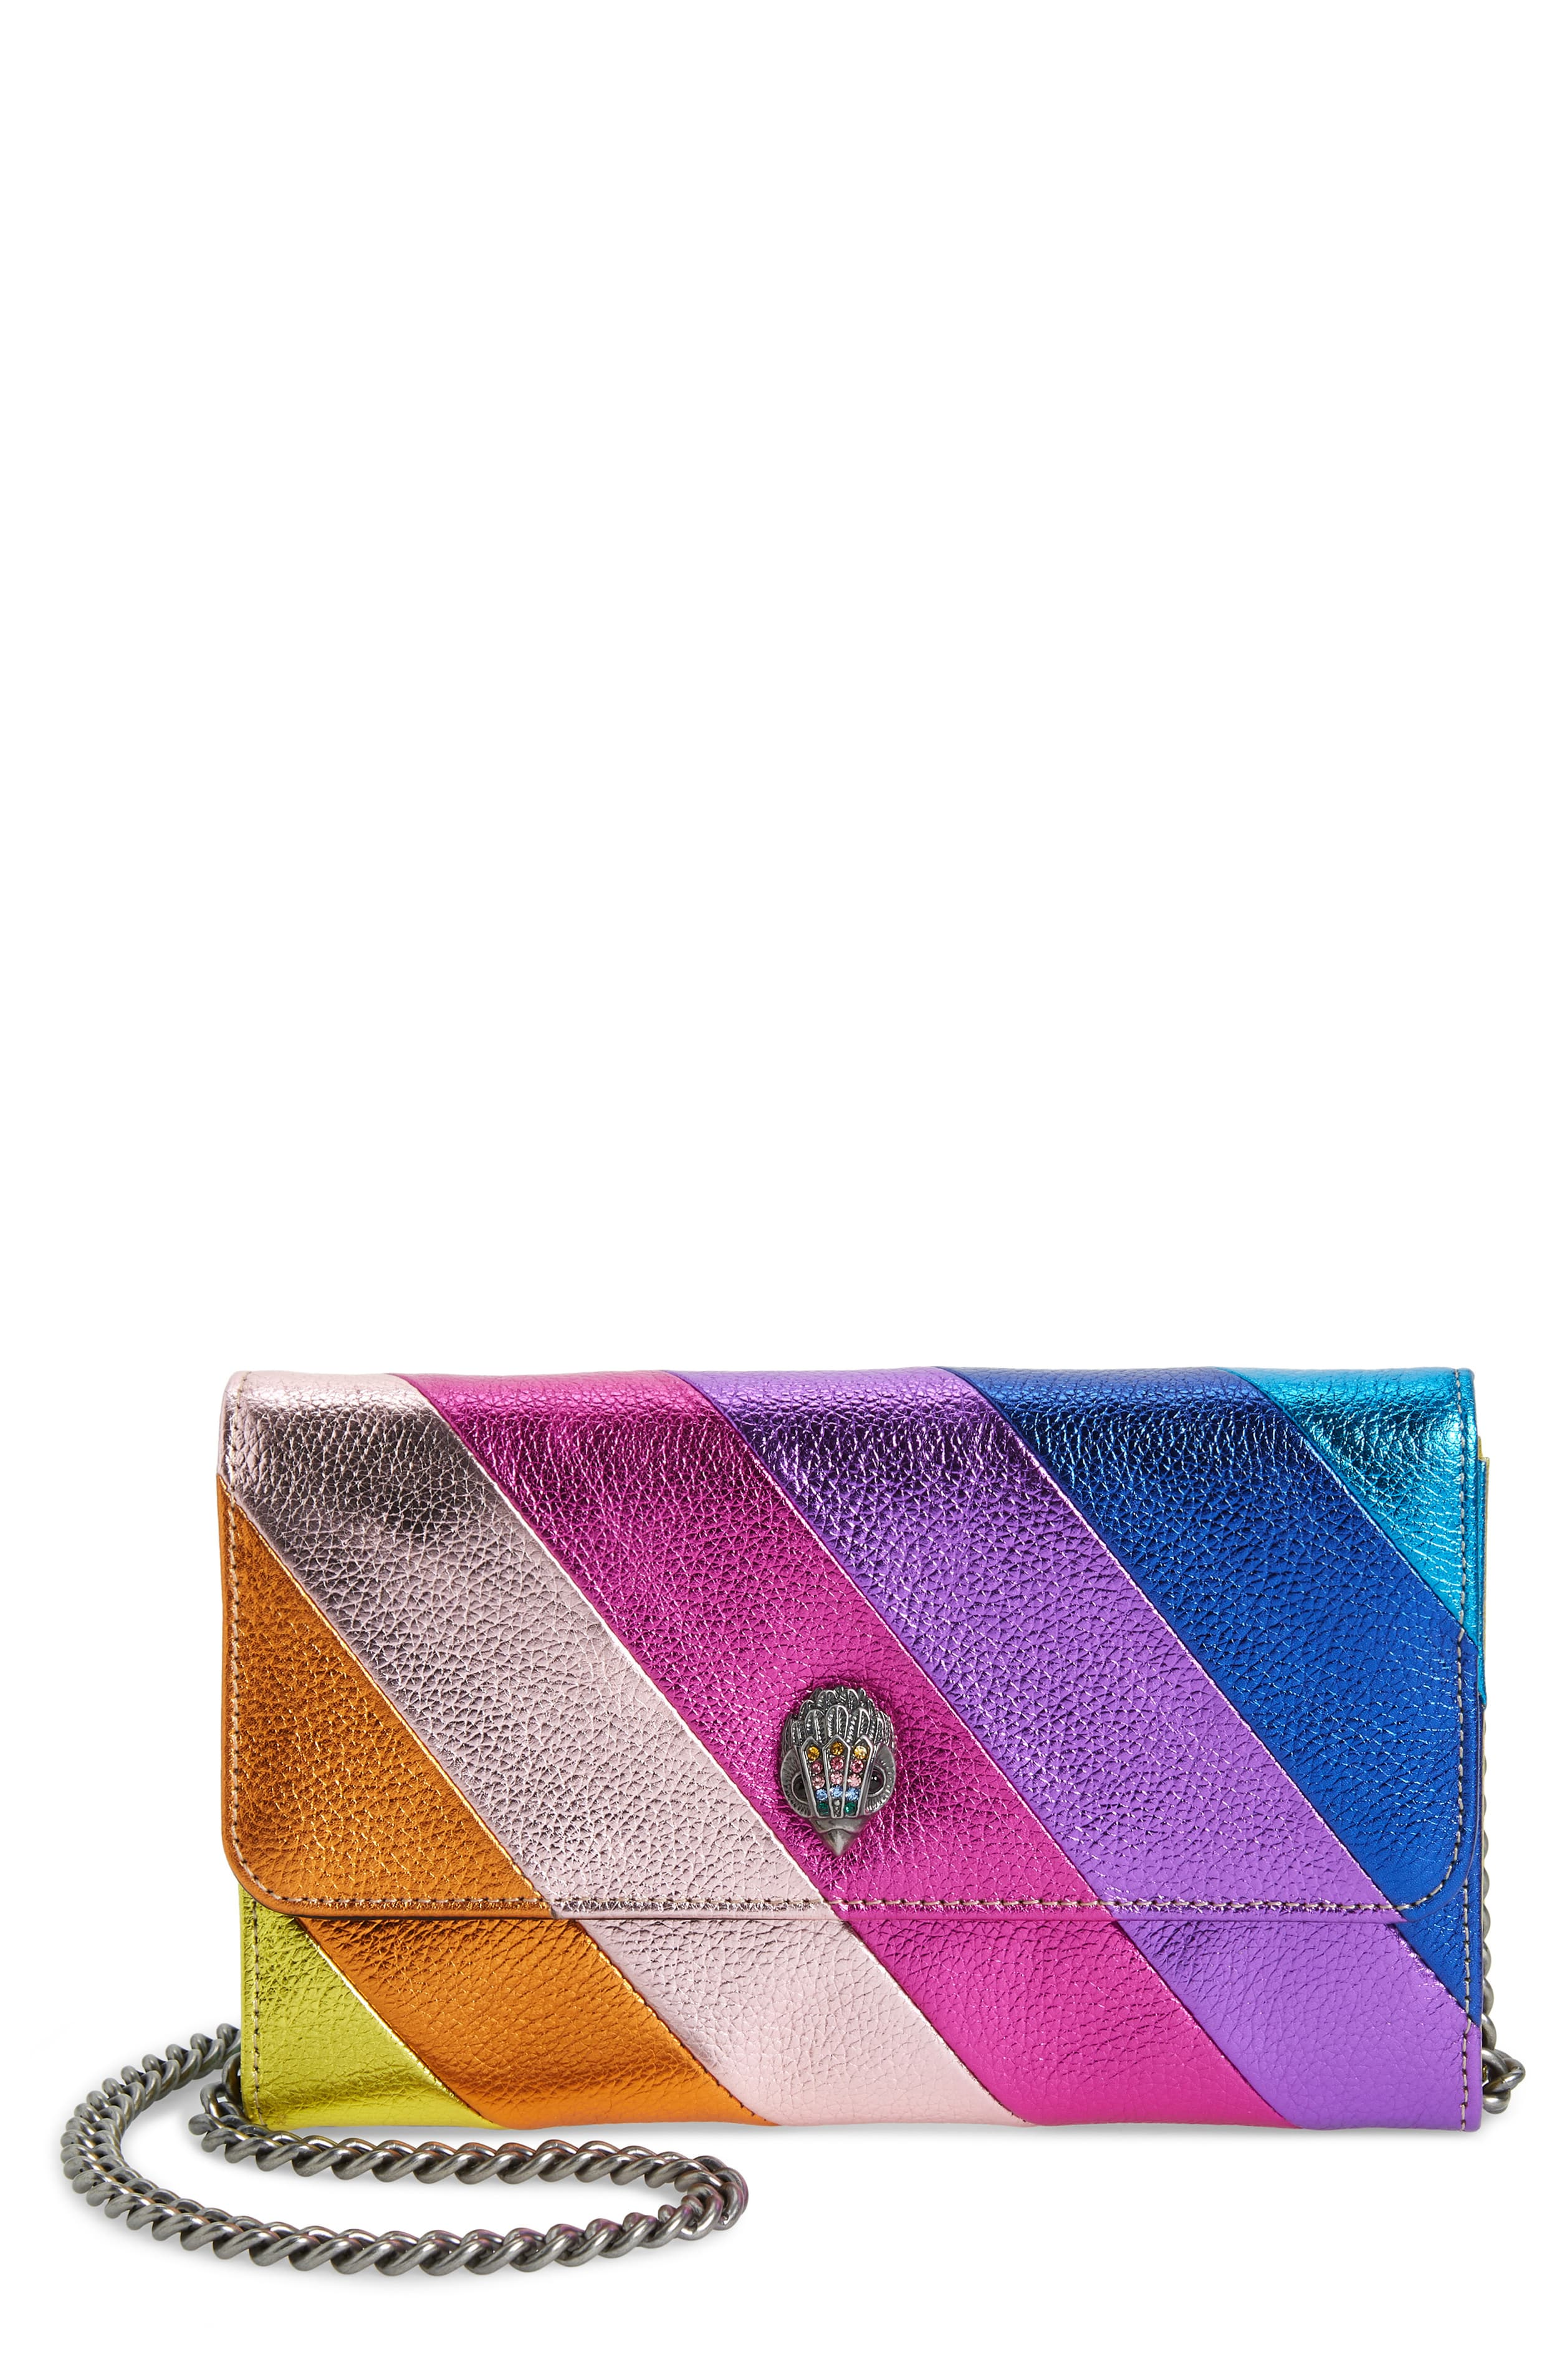 "<p>Colorful stripes of metallic leather and a signature eagle dazzle the flap of a chic wallet with a drop-in chain for easy carrying. $120{&nbsp;}</p><p><a  href=""https://shop.nordstrom.com/s/kurt-geiger-london-stripe-leather-chain-wallet/5164872/full?origin=category-personalizedsort&breadcrumb=Home%2FWomen%2FShop%20by%20Occasion%2FNight%20Out&color=multi%2F%20other"" target=""_blank"" title=""https://shop.nordstrom.com/s/kurt-geiger-london-stripe-leather-chain-wallet/5164872/full?origin=category-personalizedsort&breadcrumb=Home%2FWomen%2FShop%20by%20Occasion%2FNight%20Out&color=multi%2F%20other"">Shop it{&nbsp;}</a></p><p>(Image: Nordstrom){&nbsp;}</p>"